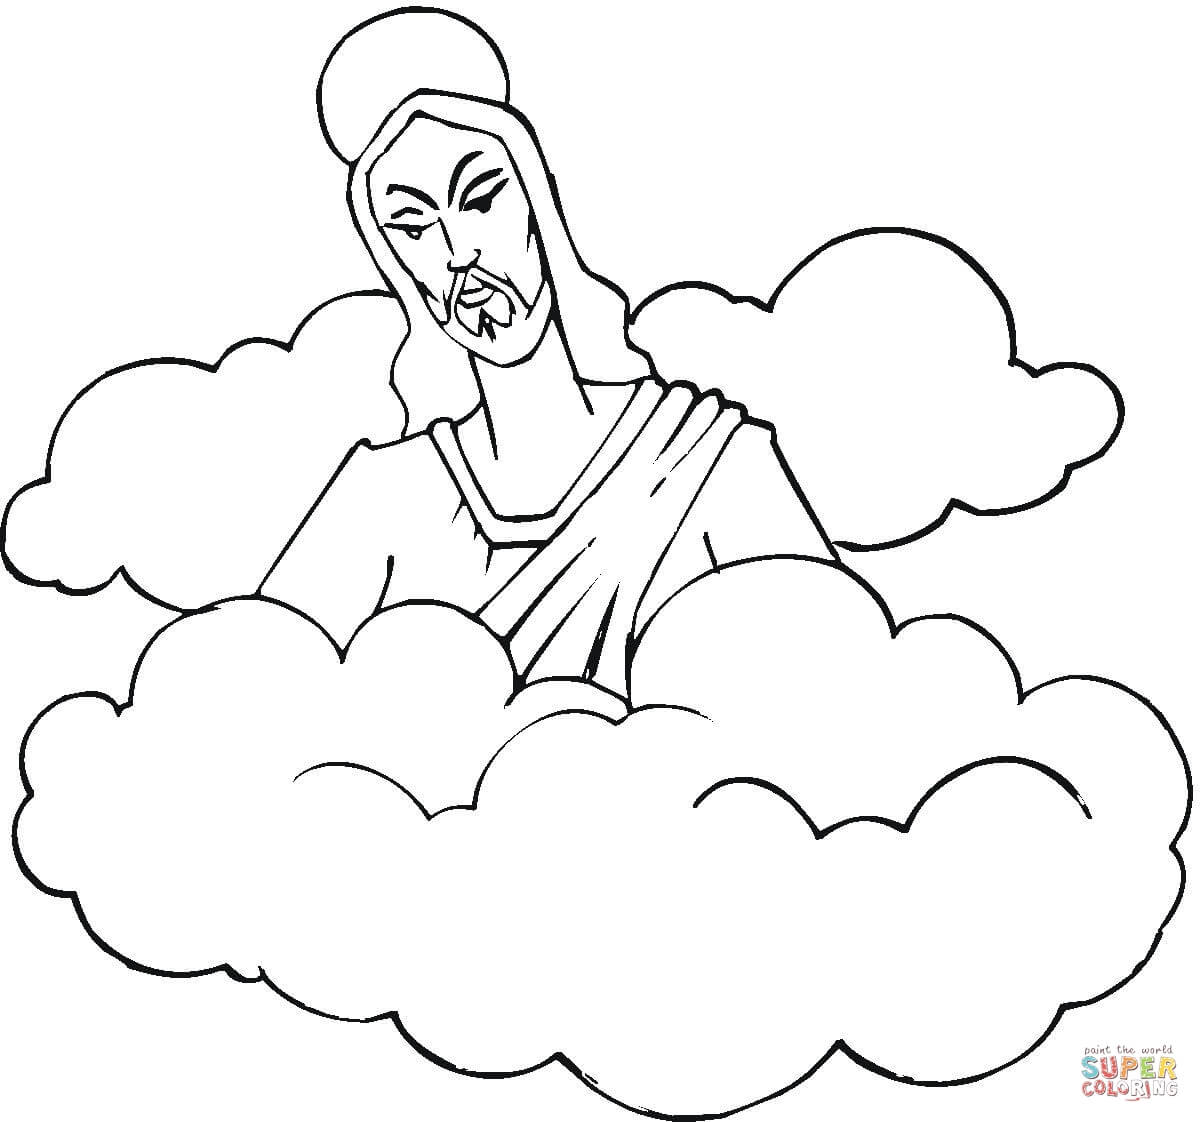 Coloring pages of clouds coloring home for Coloring pages clouds